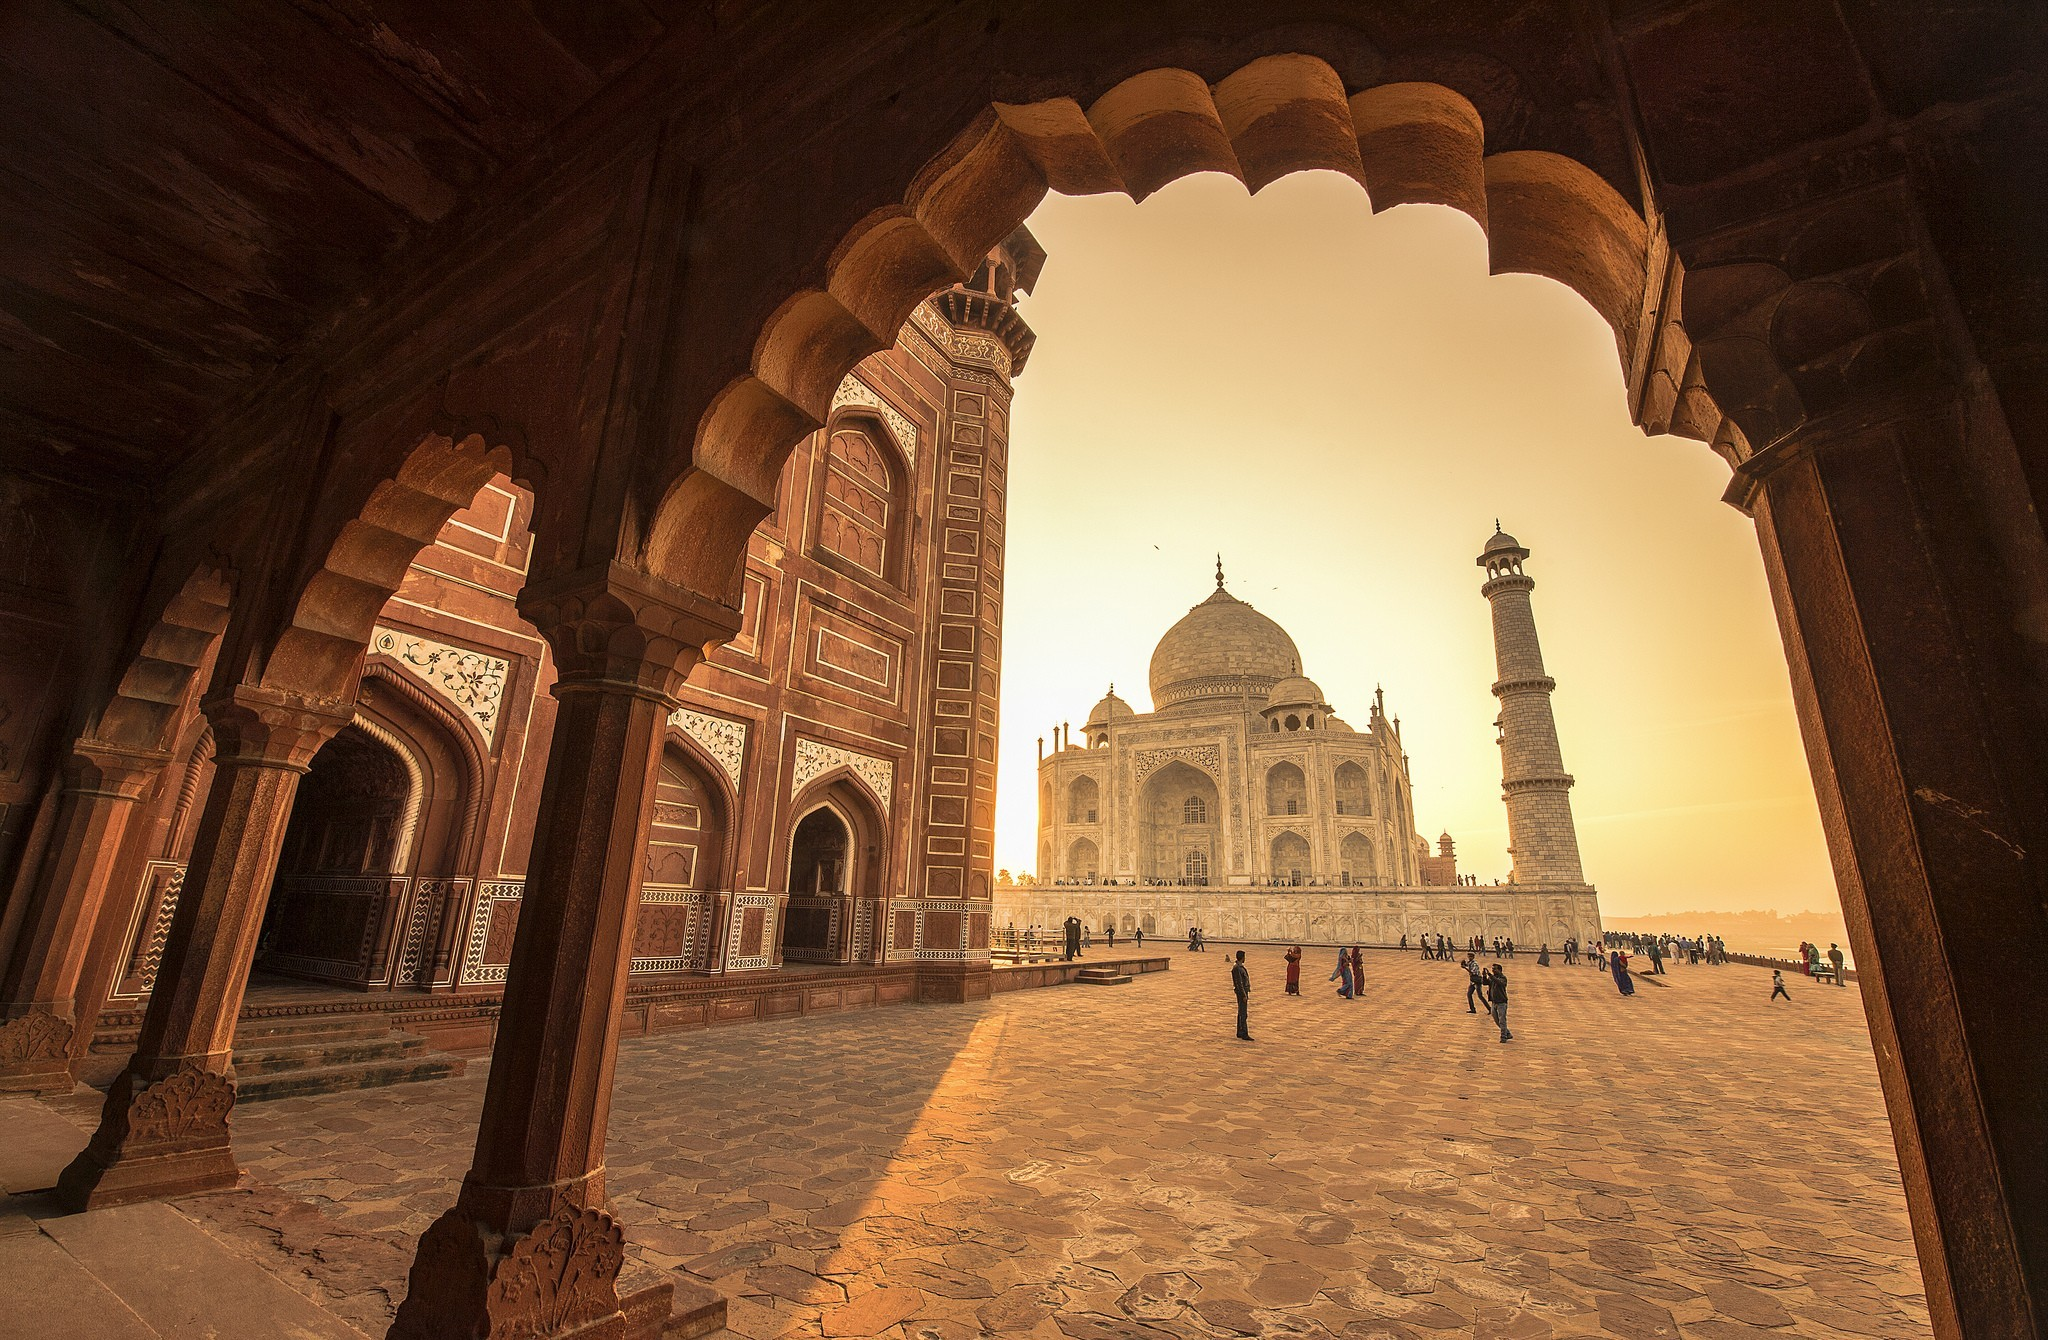 Indian Hd Backgrounds: Taj Mahal Full HD Wallpaper And Background Image